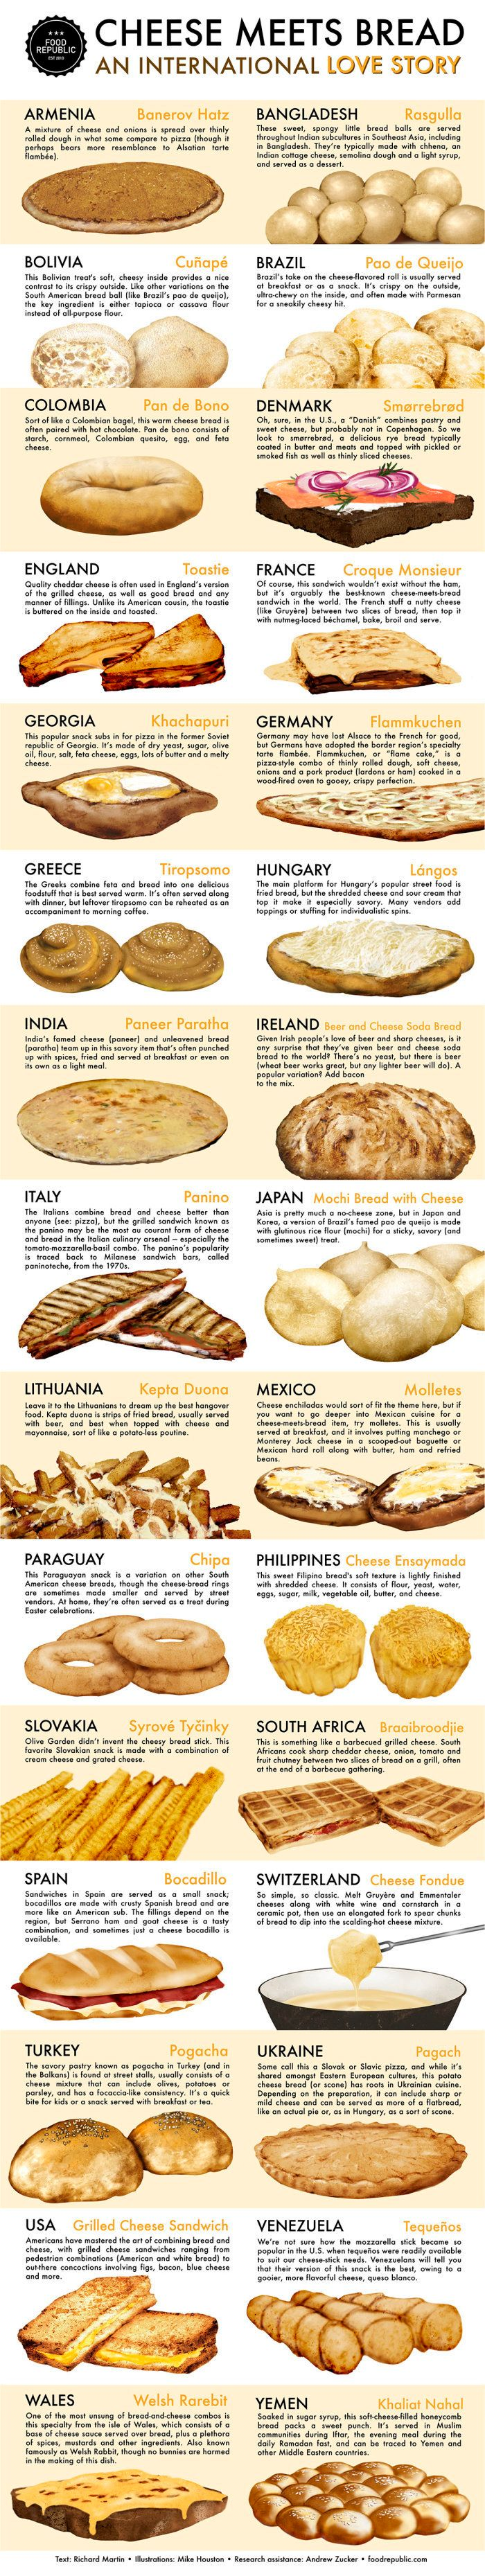 30 Ways The Rest Of World Combines Bread And Cheese